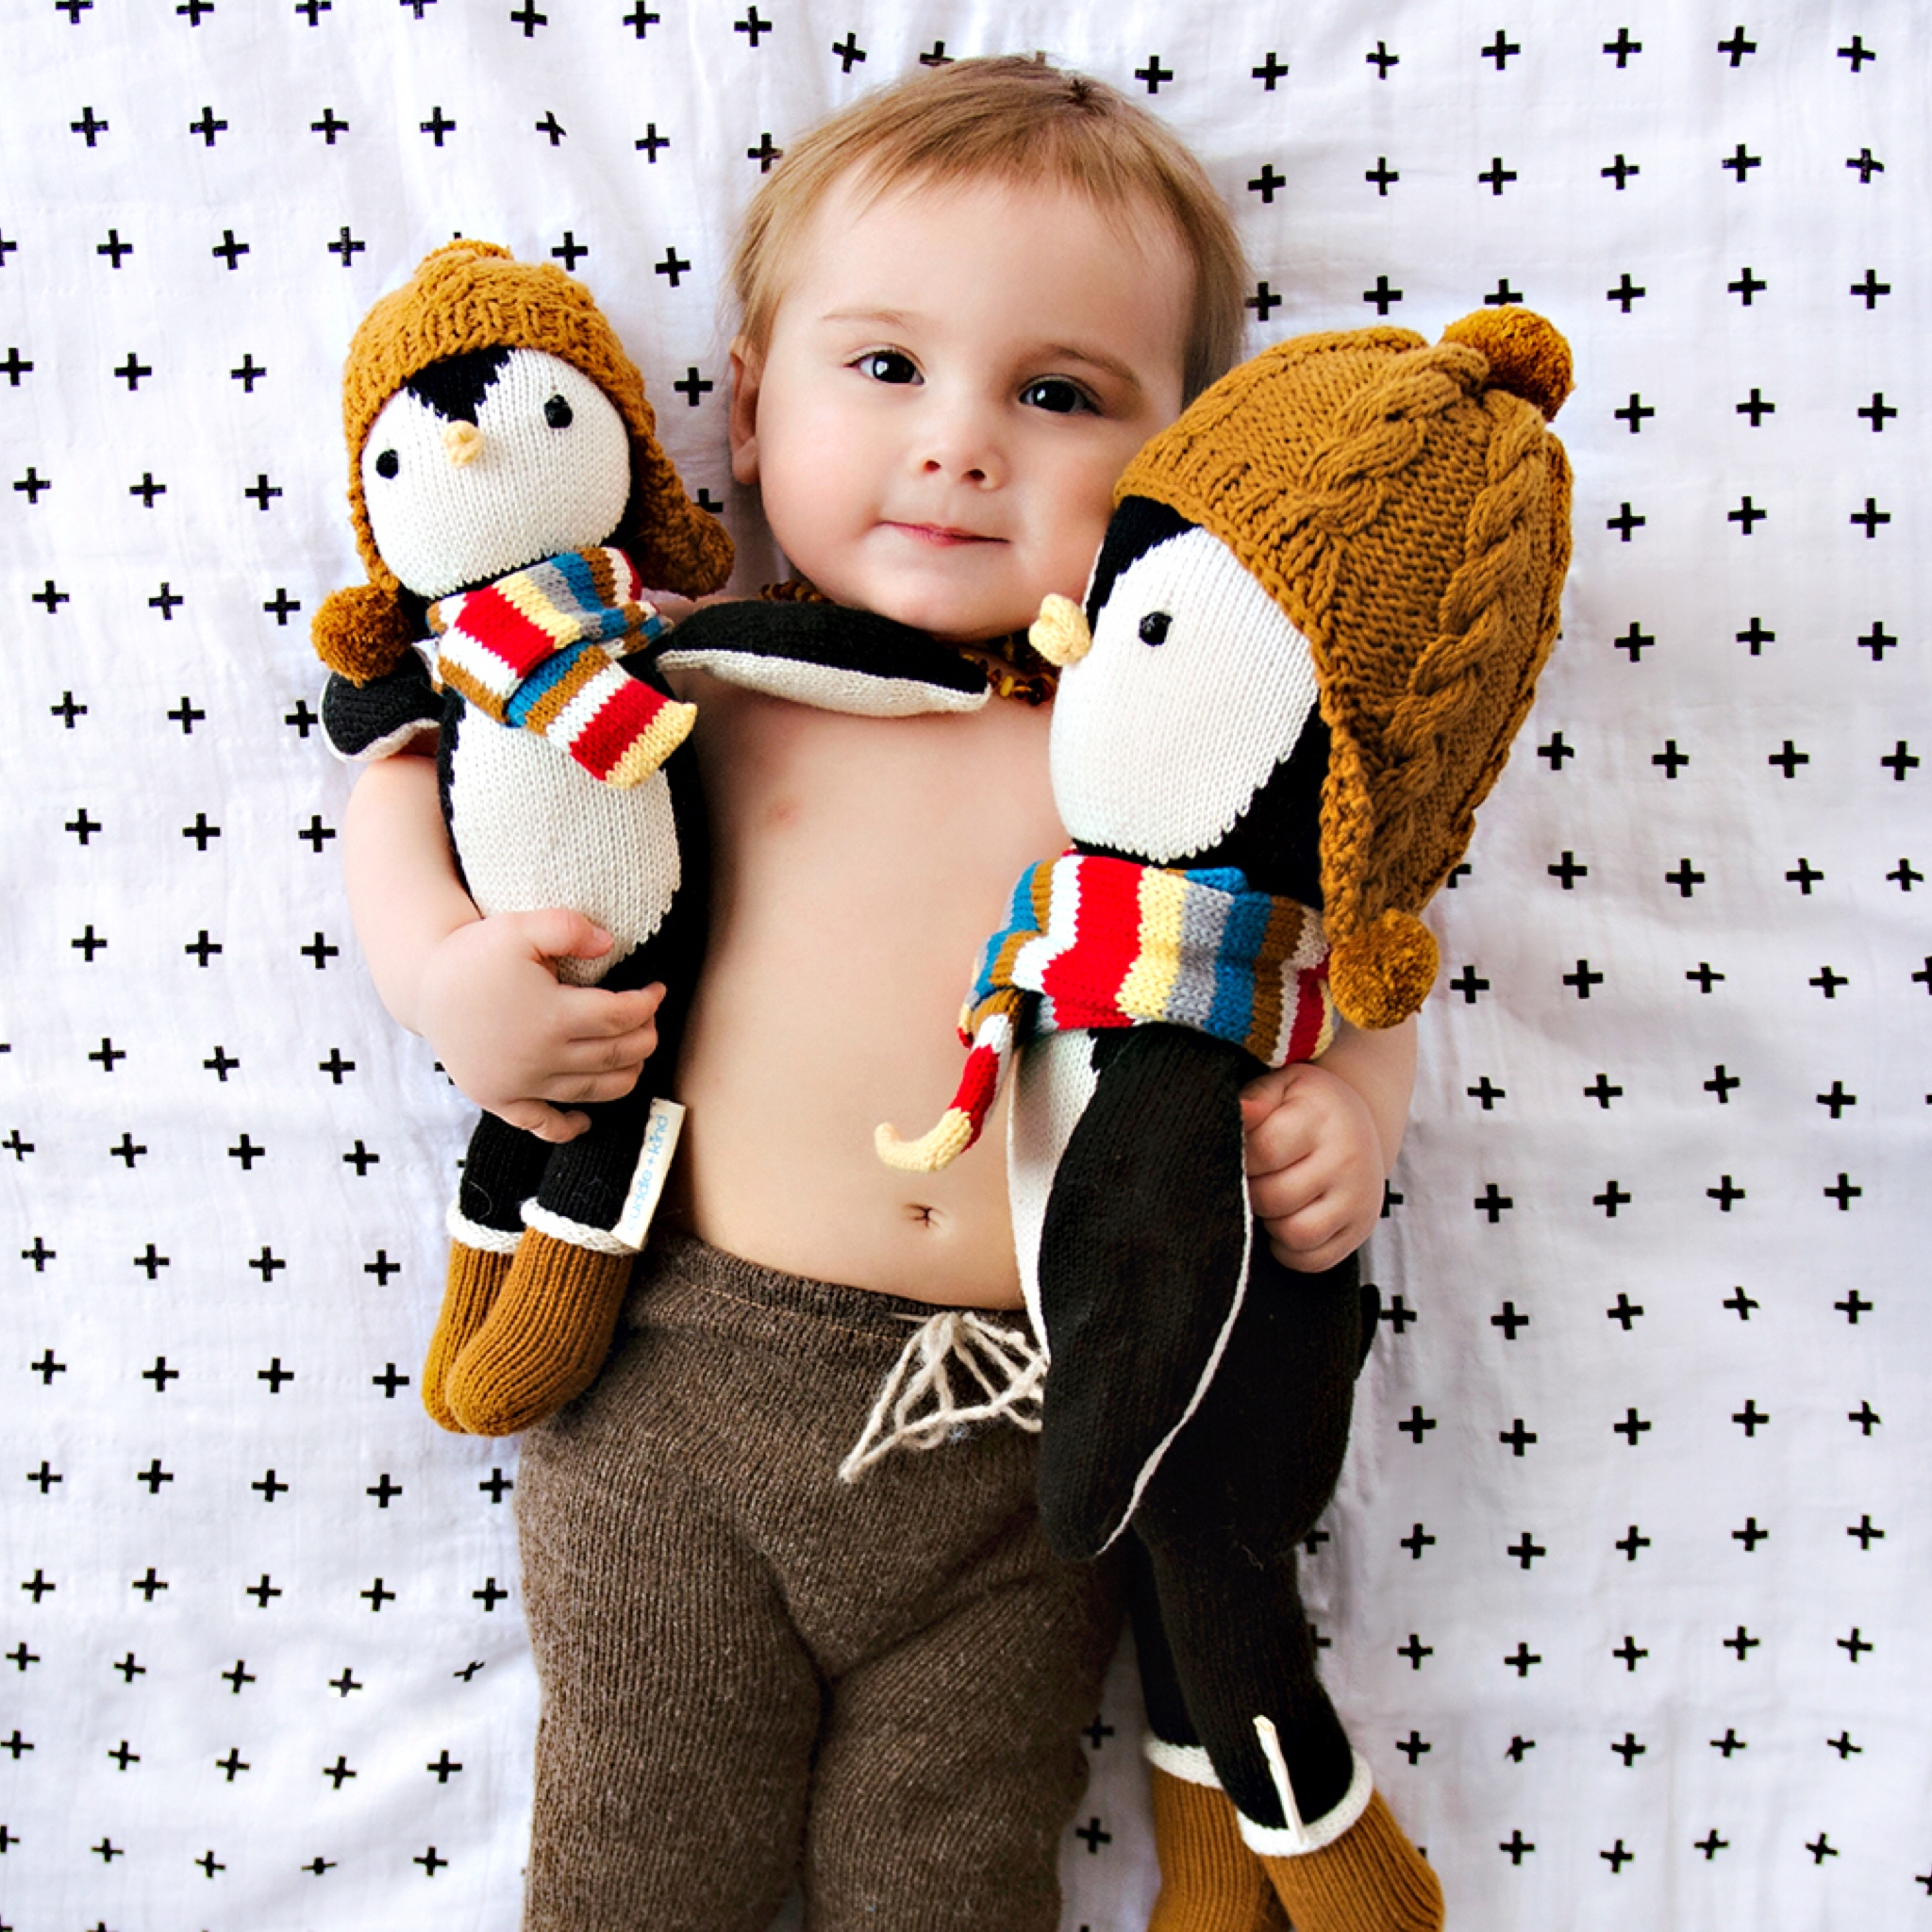 A baby holding a two stuffed animals.